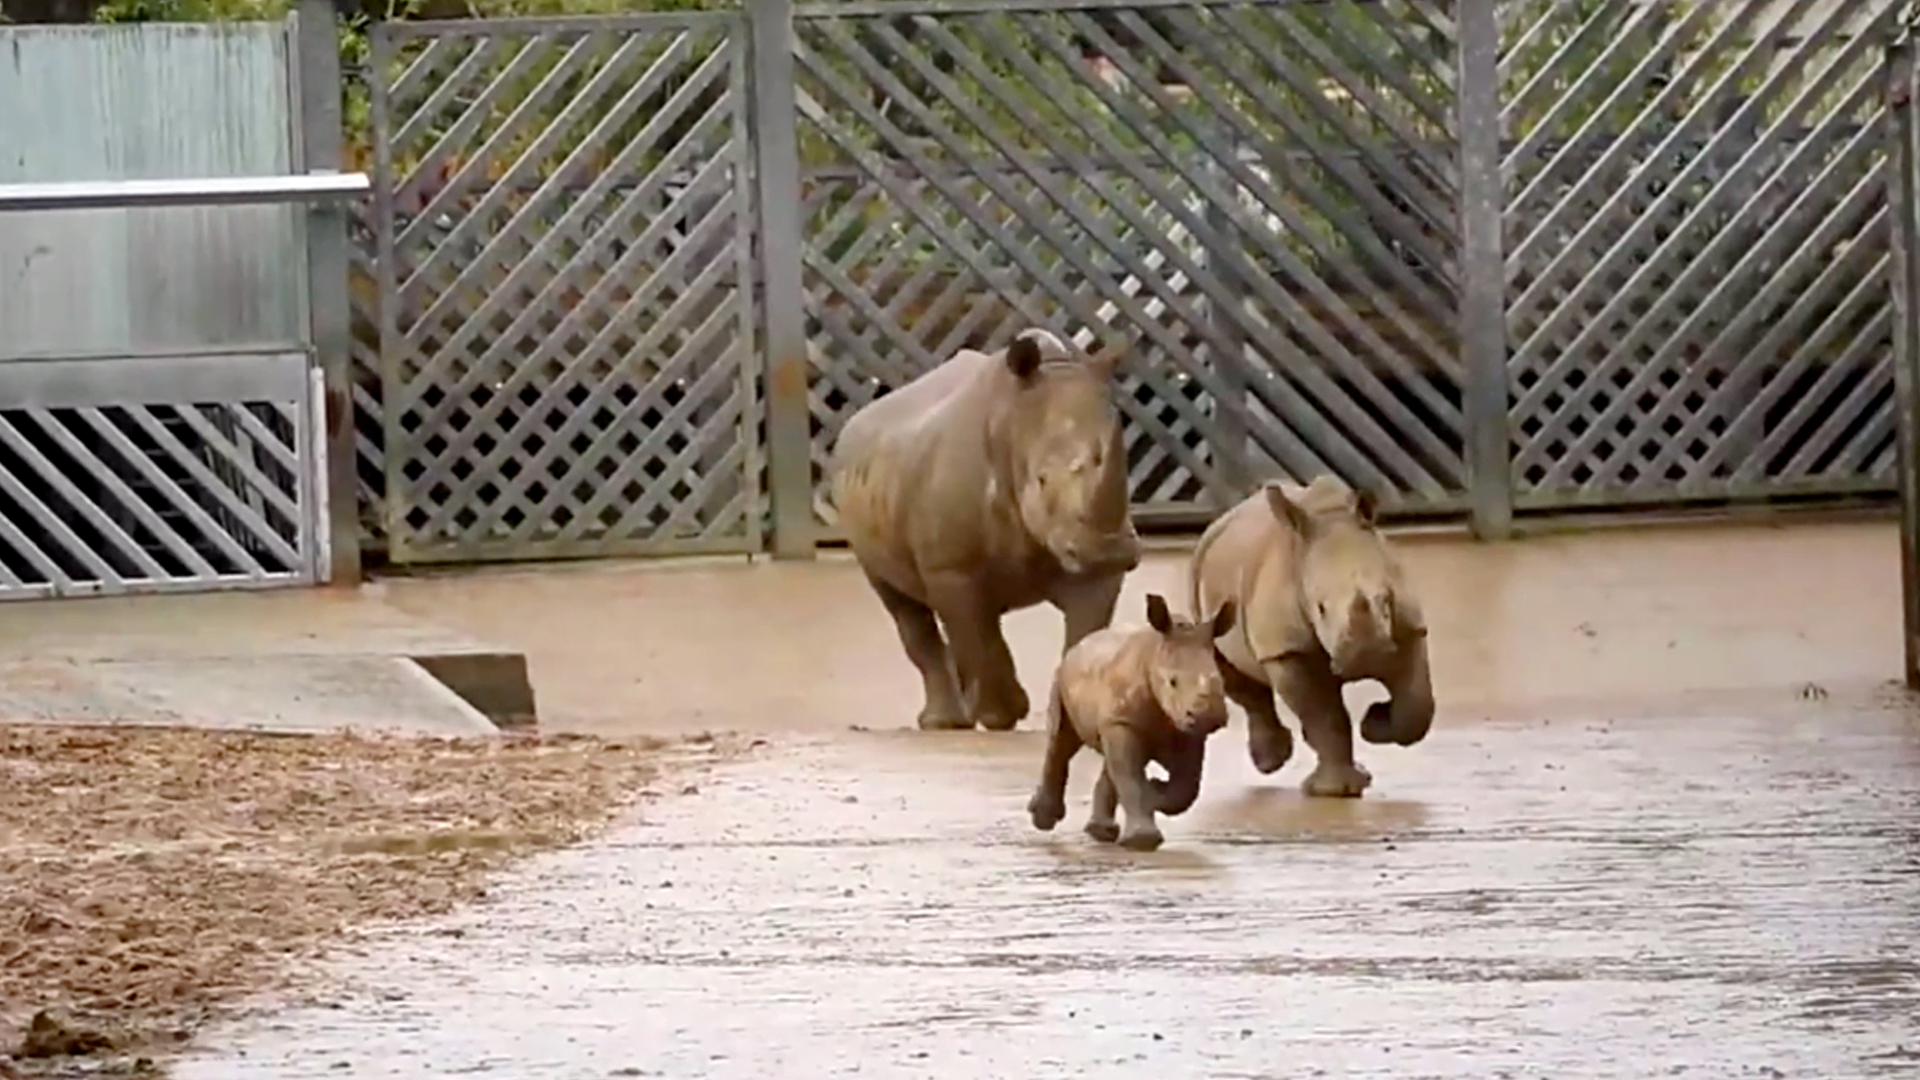 White Rhino Meets the Rest of the Rhino Gang - Zenger News